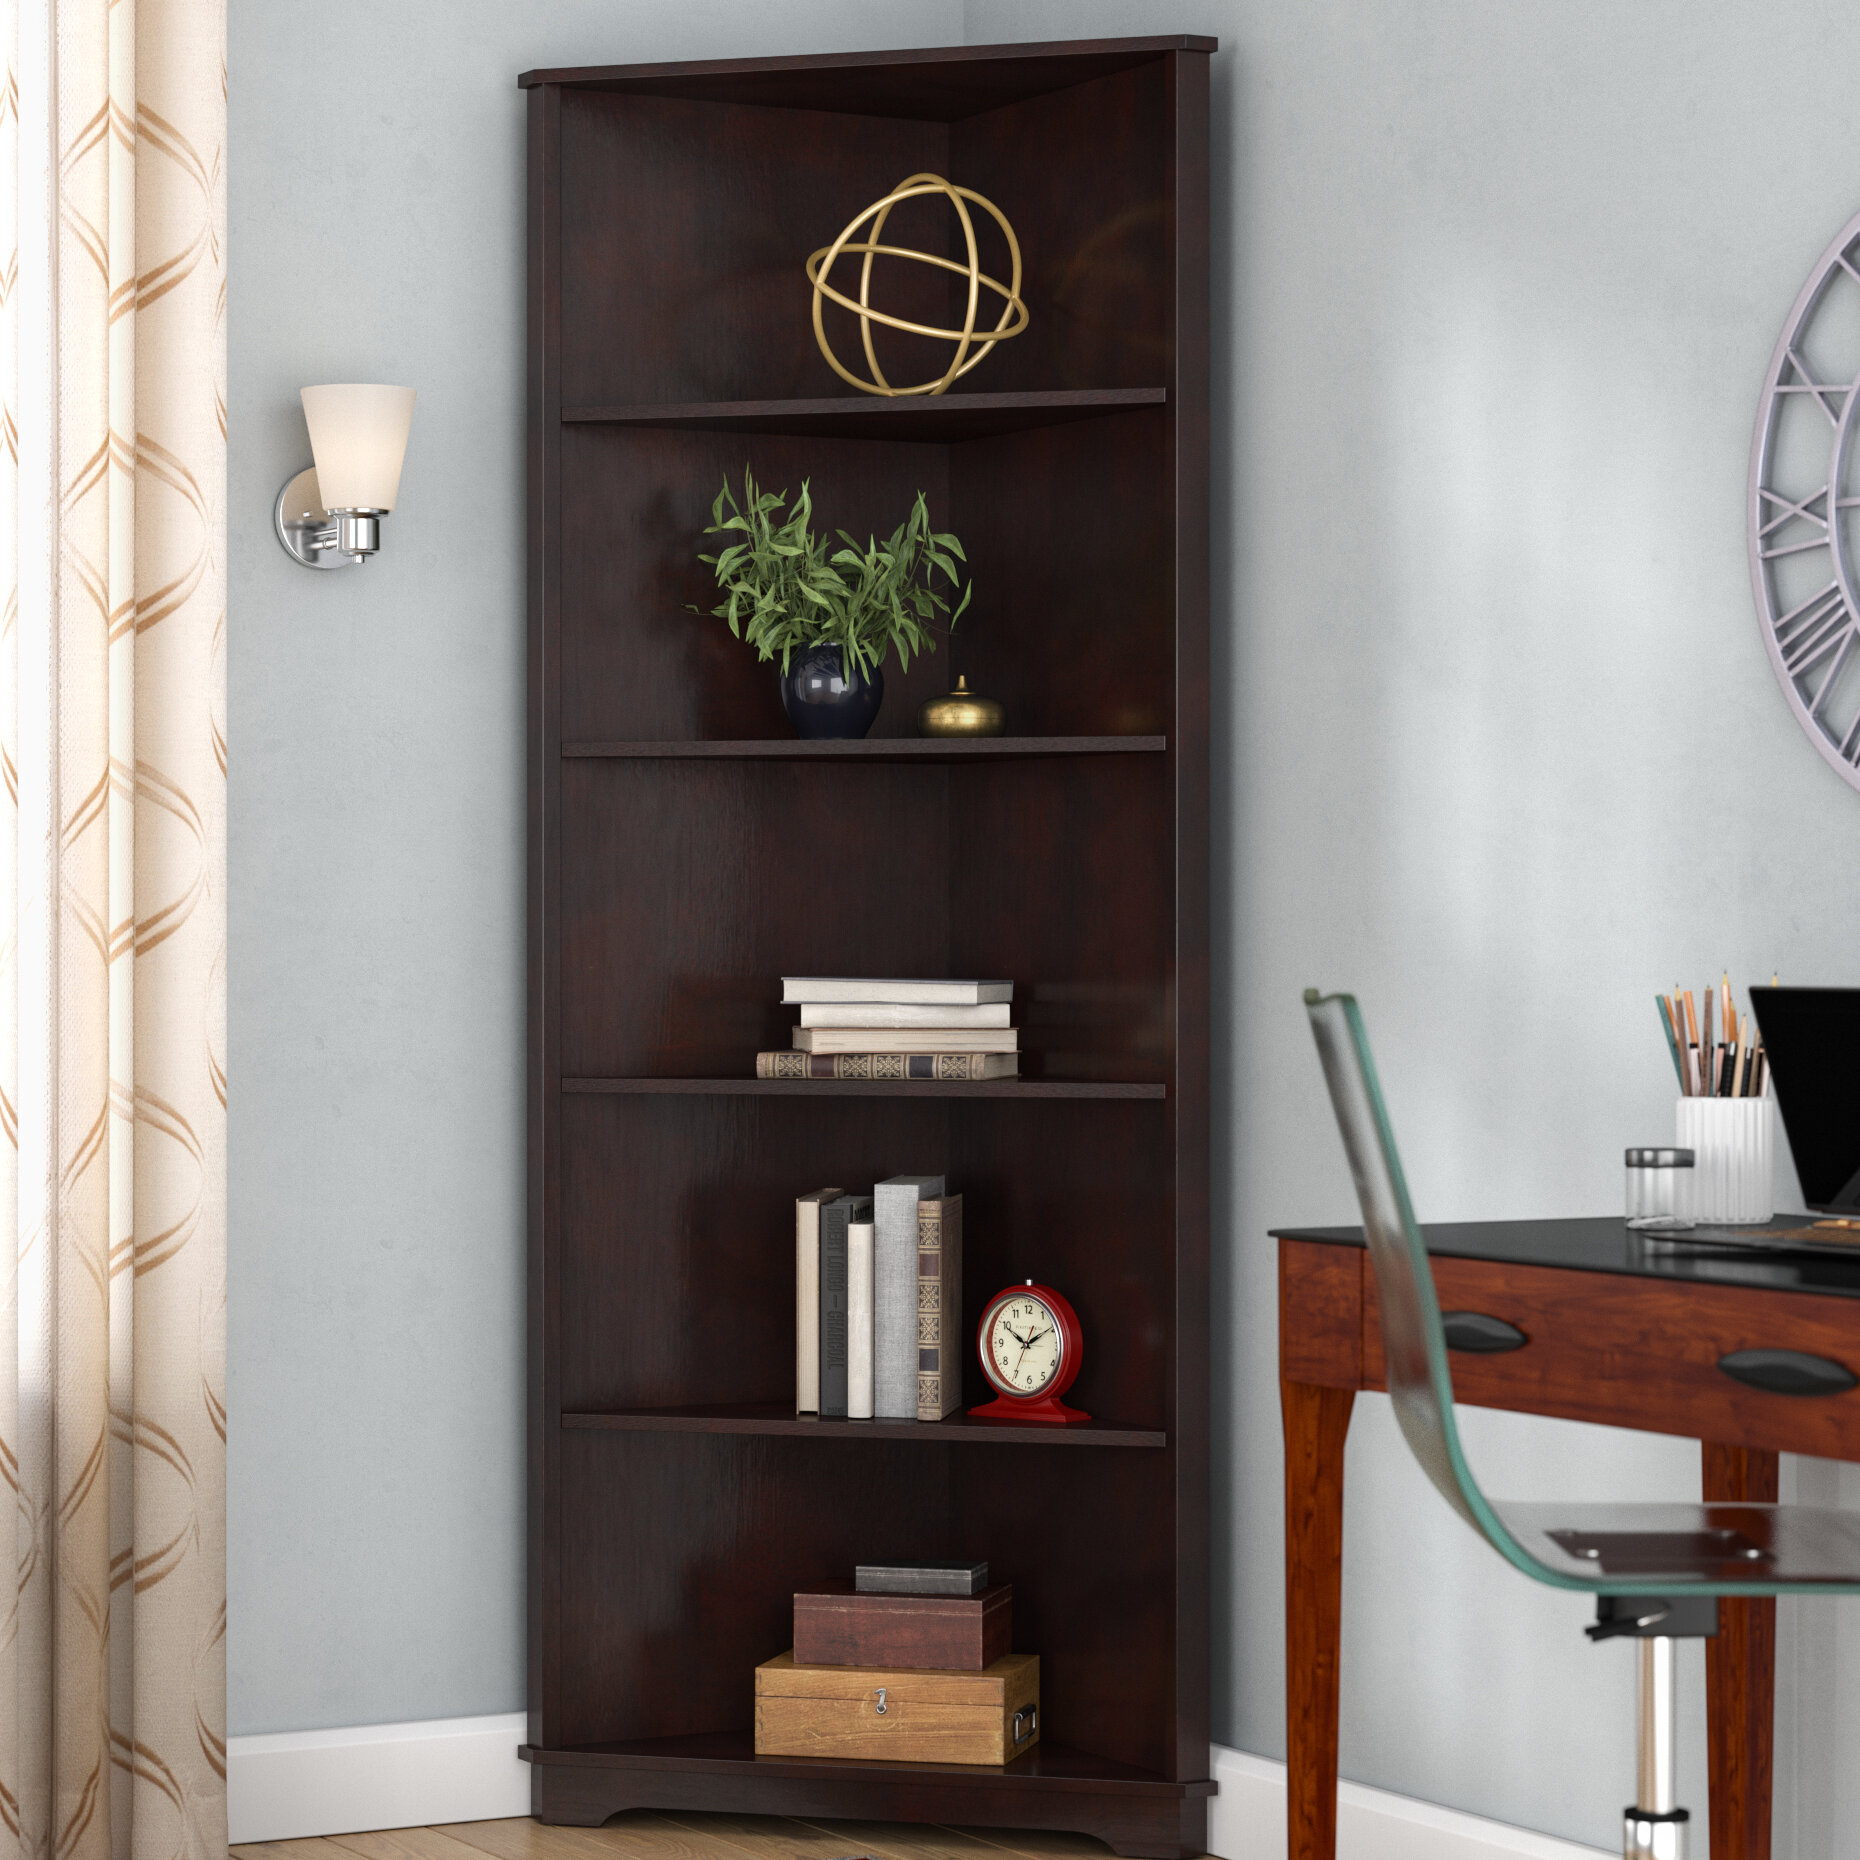 Red Barrel Studio Tauranac Corner Unit Bookcase Reviews